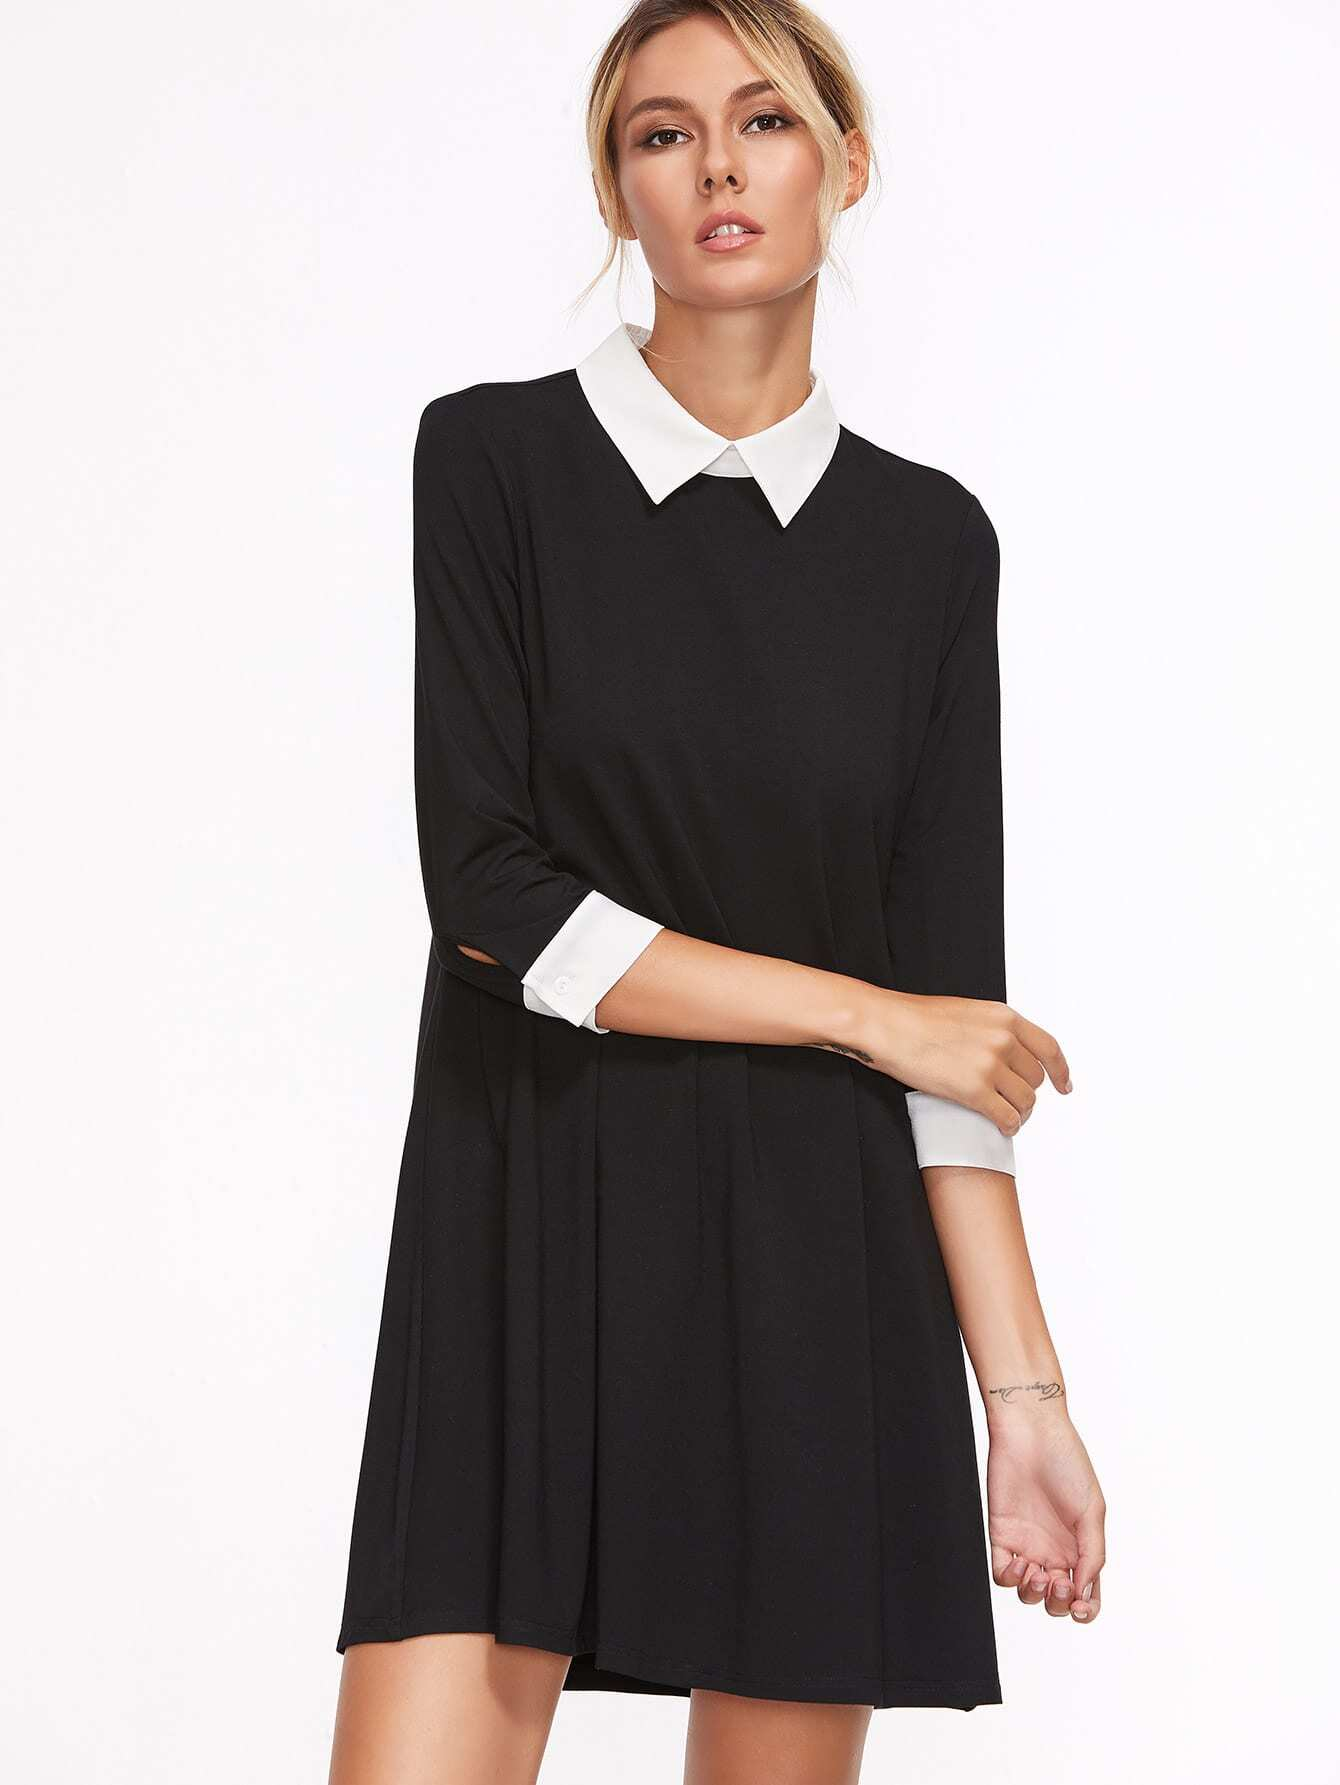 Contrast Collar And Cuff Swing Dress lace collar and cuff tunic dress